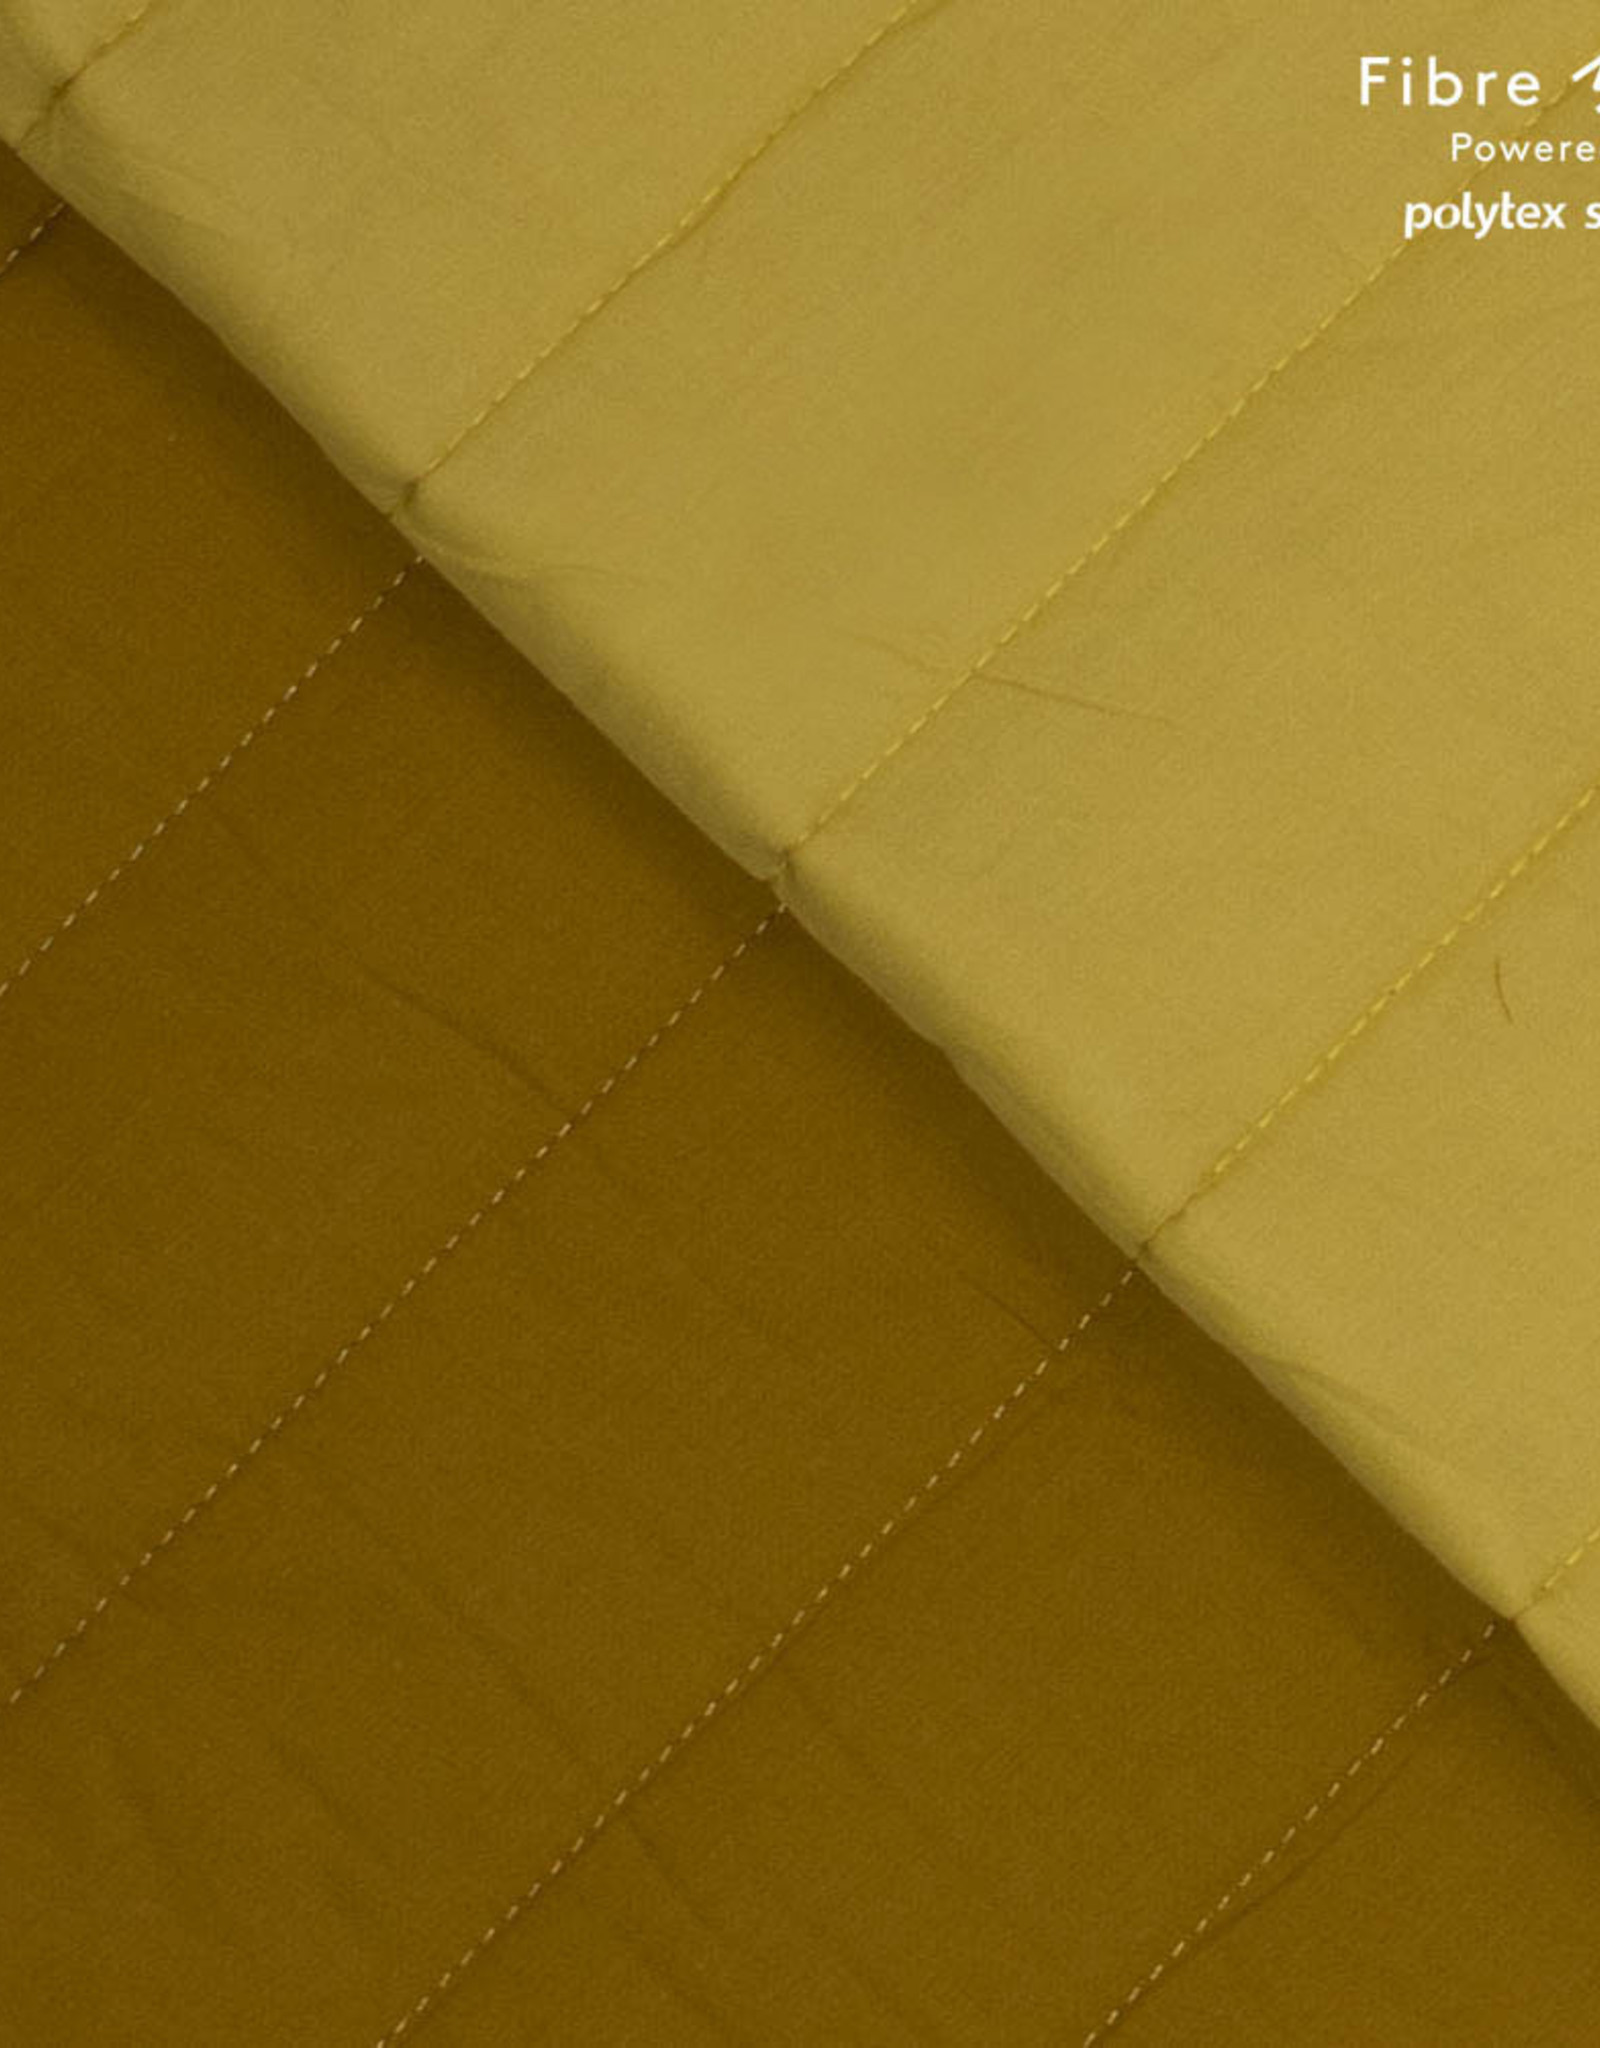 Fibre Mood Quilted - Dried Tobacco